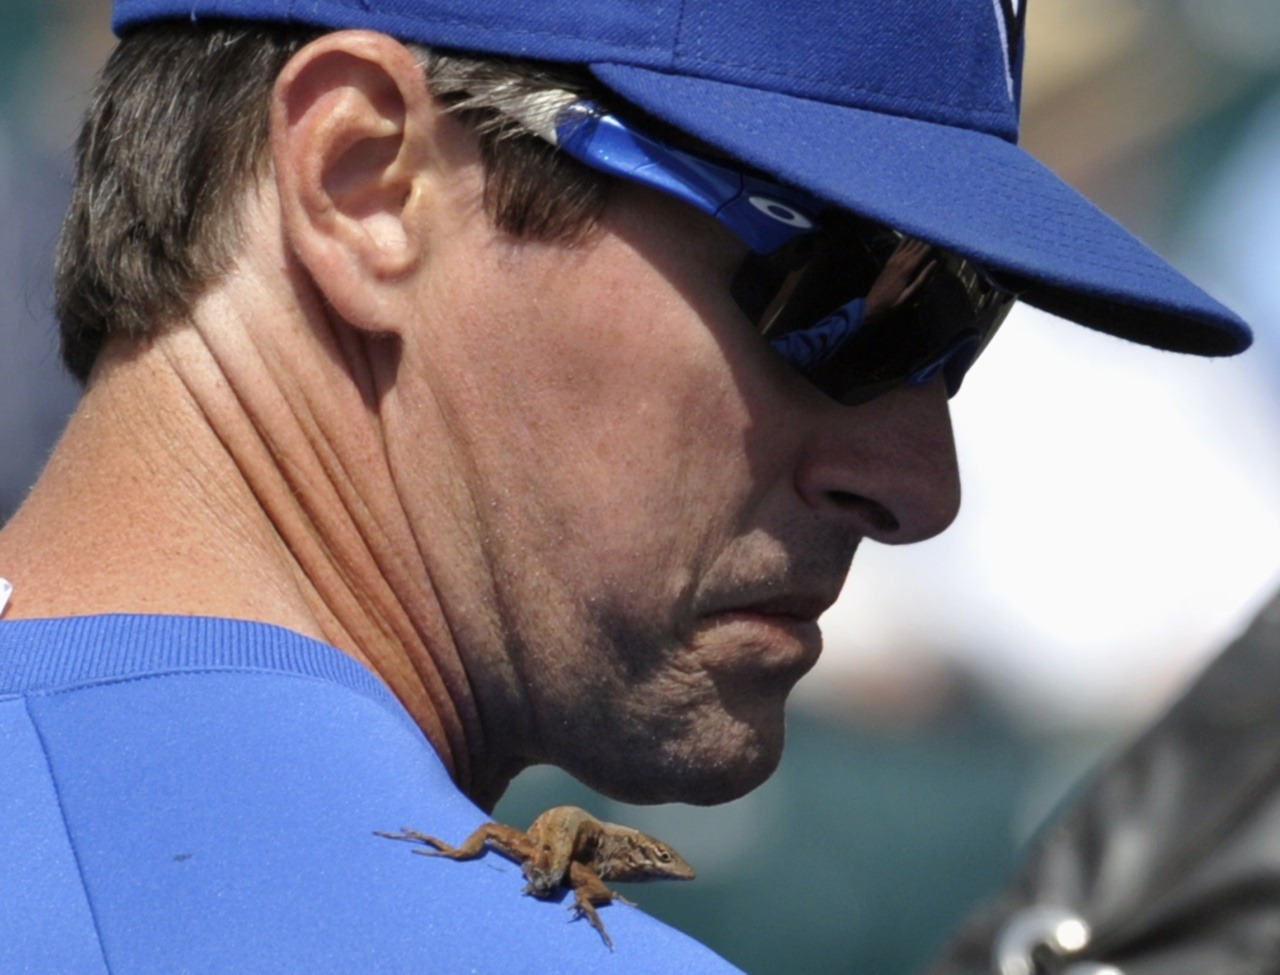 Toronto Blue Jays minor-league hitting coach Chad Mottola looks at a small lizard that one of the players put on his shoulder before their Grapefruit League baseball game against the Pittsburgh Pirates in Bradenton, Florida March 4, 2012. The Jays won 8-5.Photo: Mike Cassese/Reuters